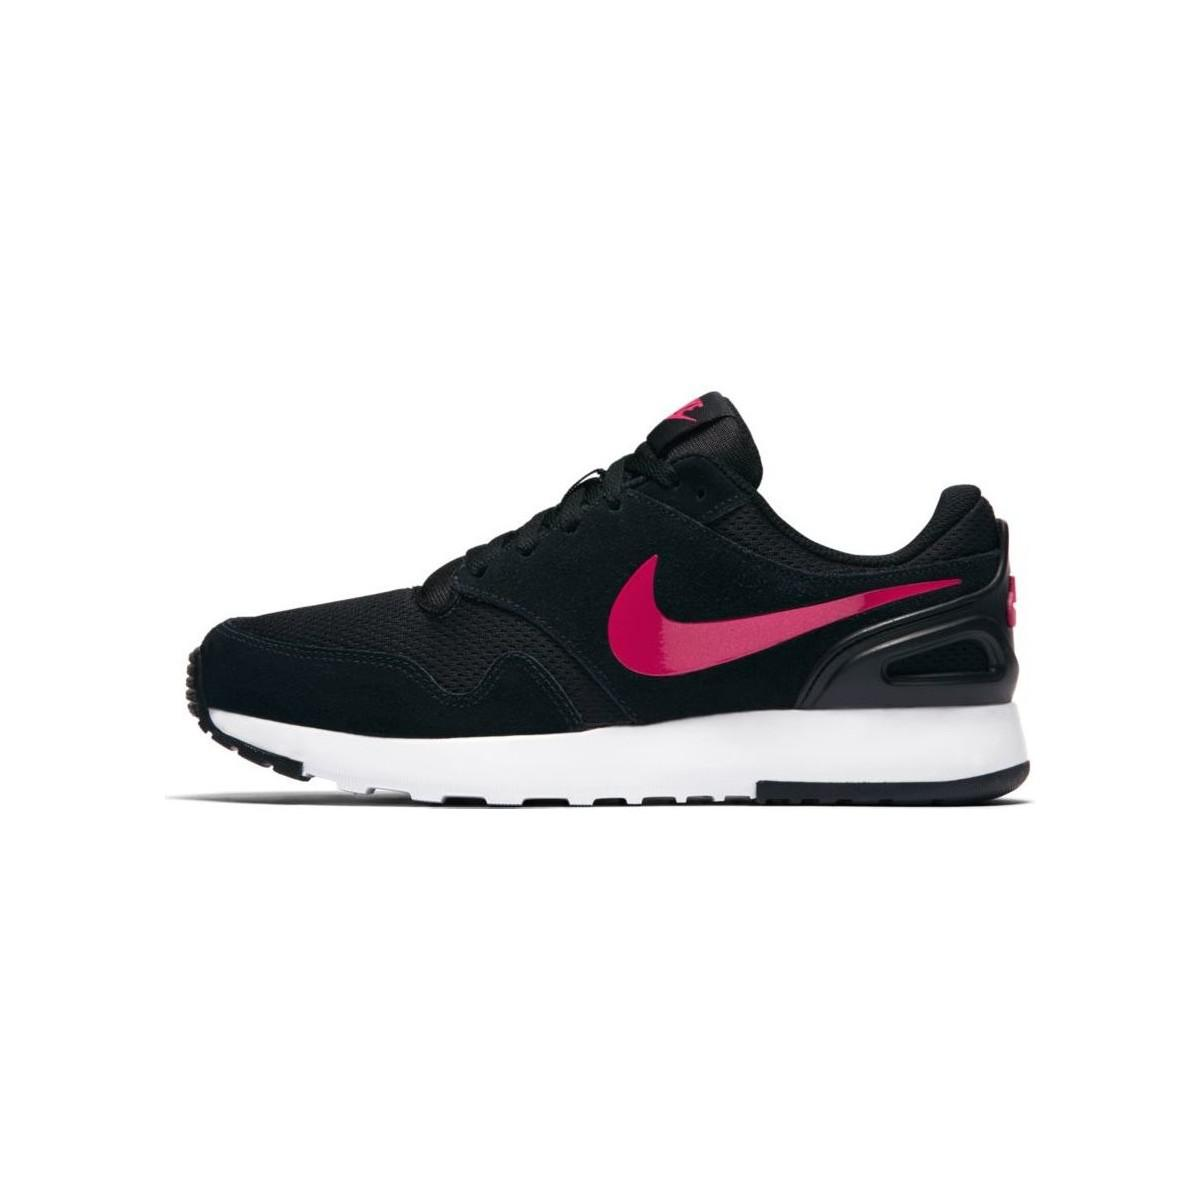 ... 6750a6397a8 Nike Girls Vibenna (gs) Running Shoe Women s Shoes  (trainers) In 066a59ccbf282